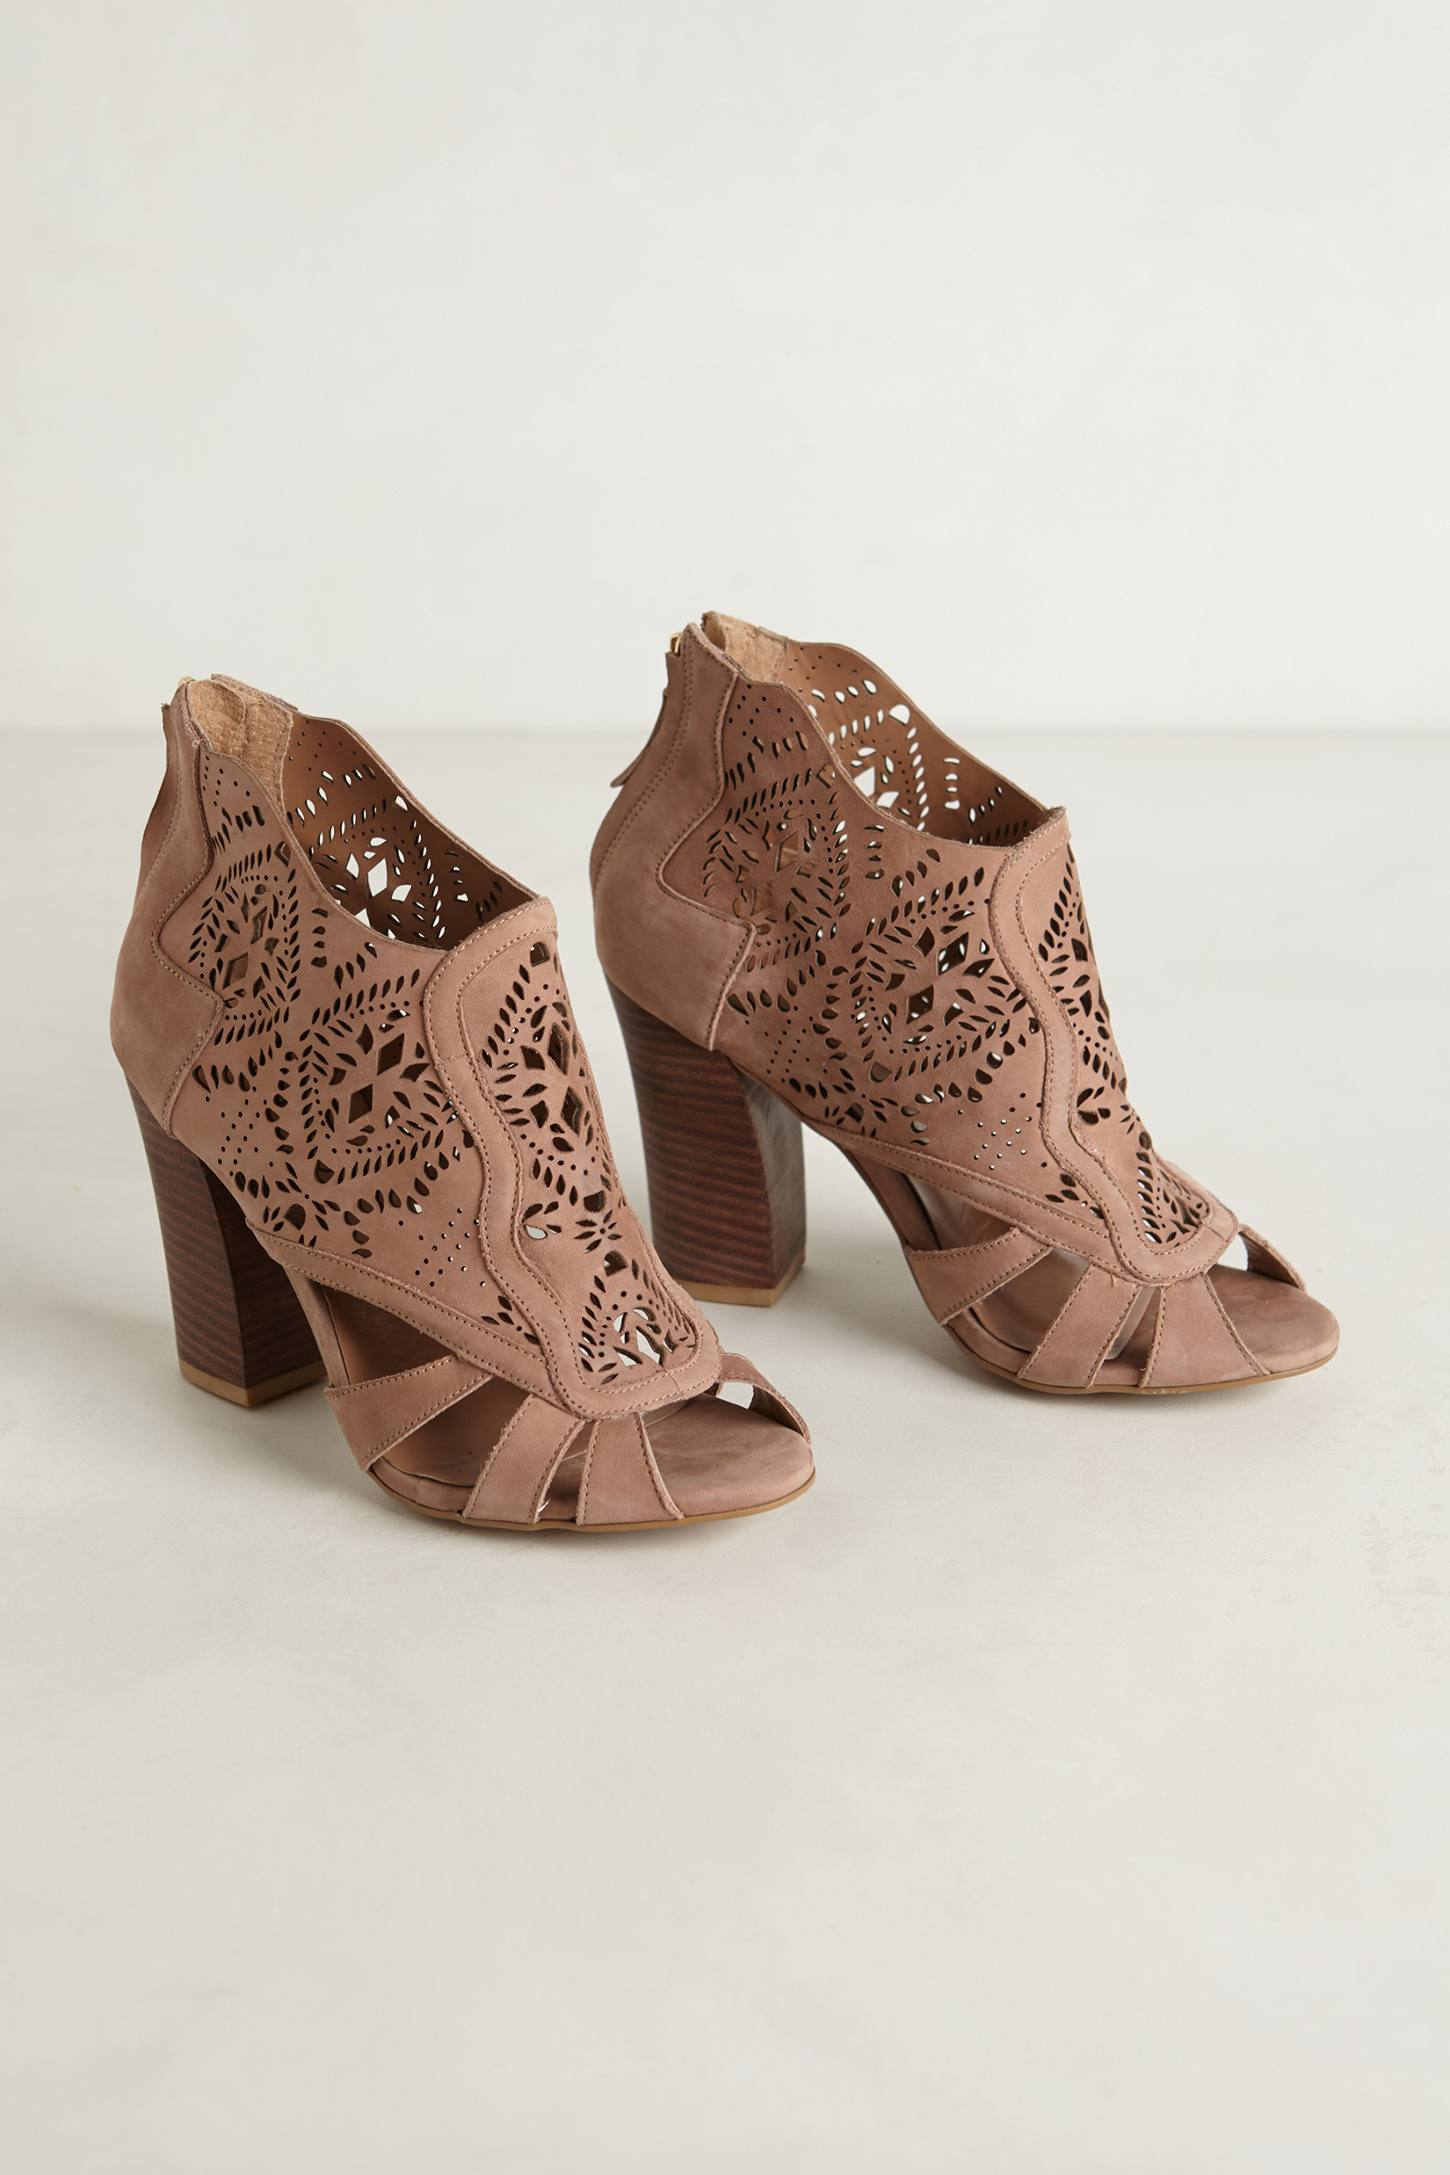 Mirelle Lacecut Booties - a...